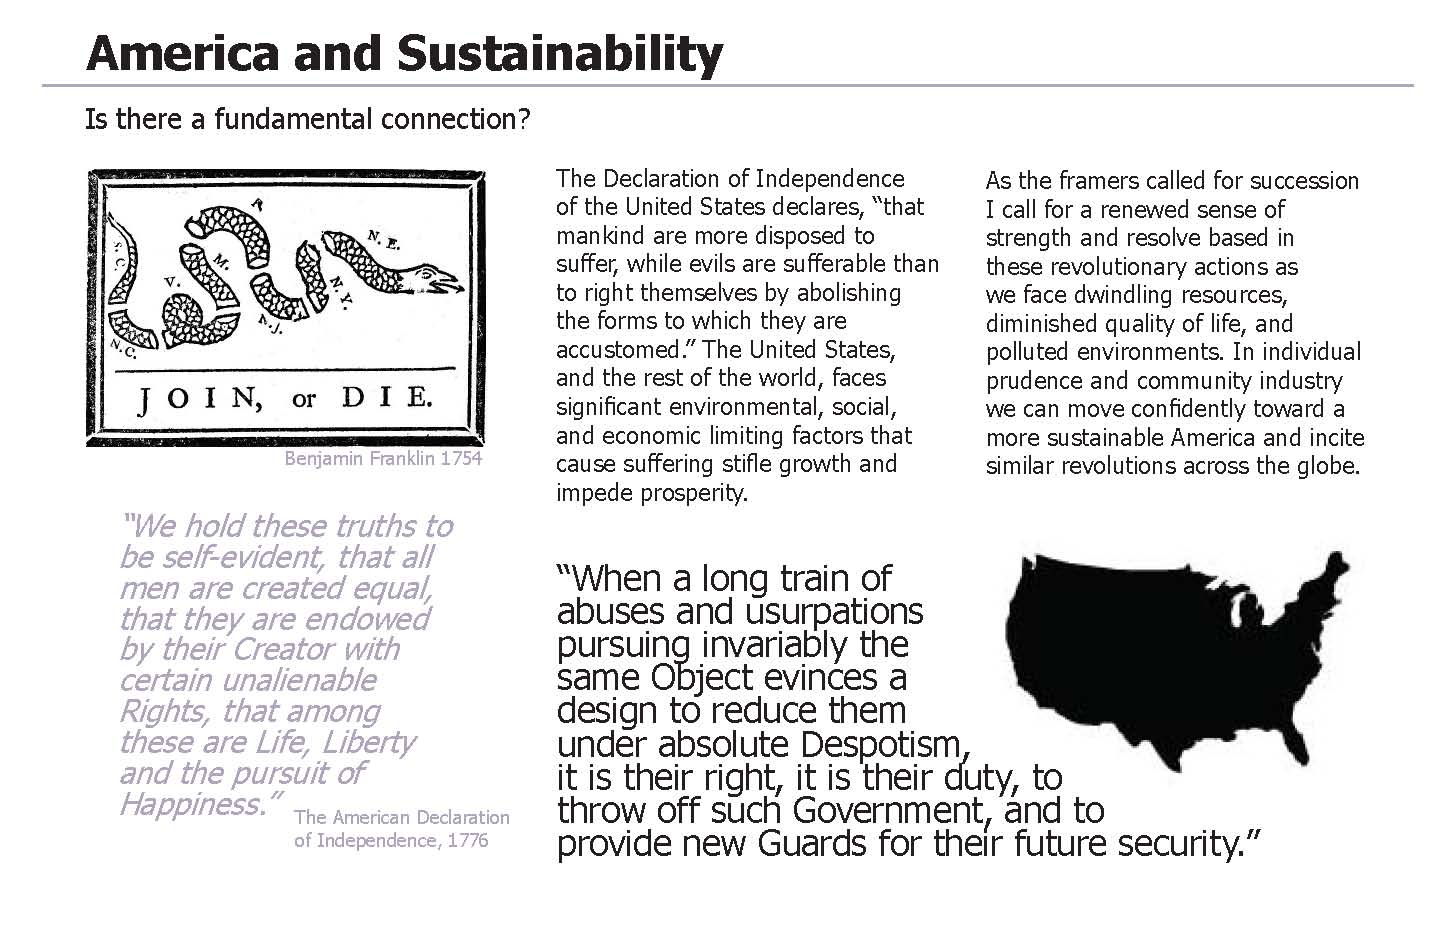 America and Sustainability.jpg